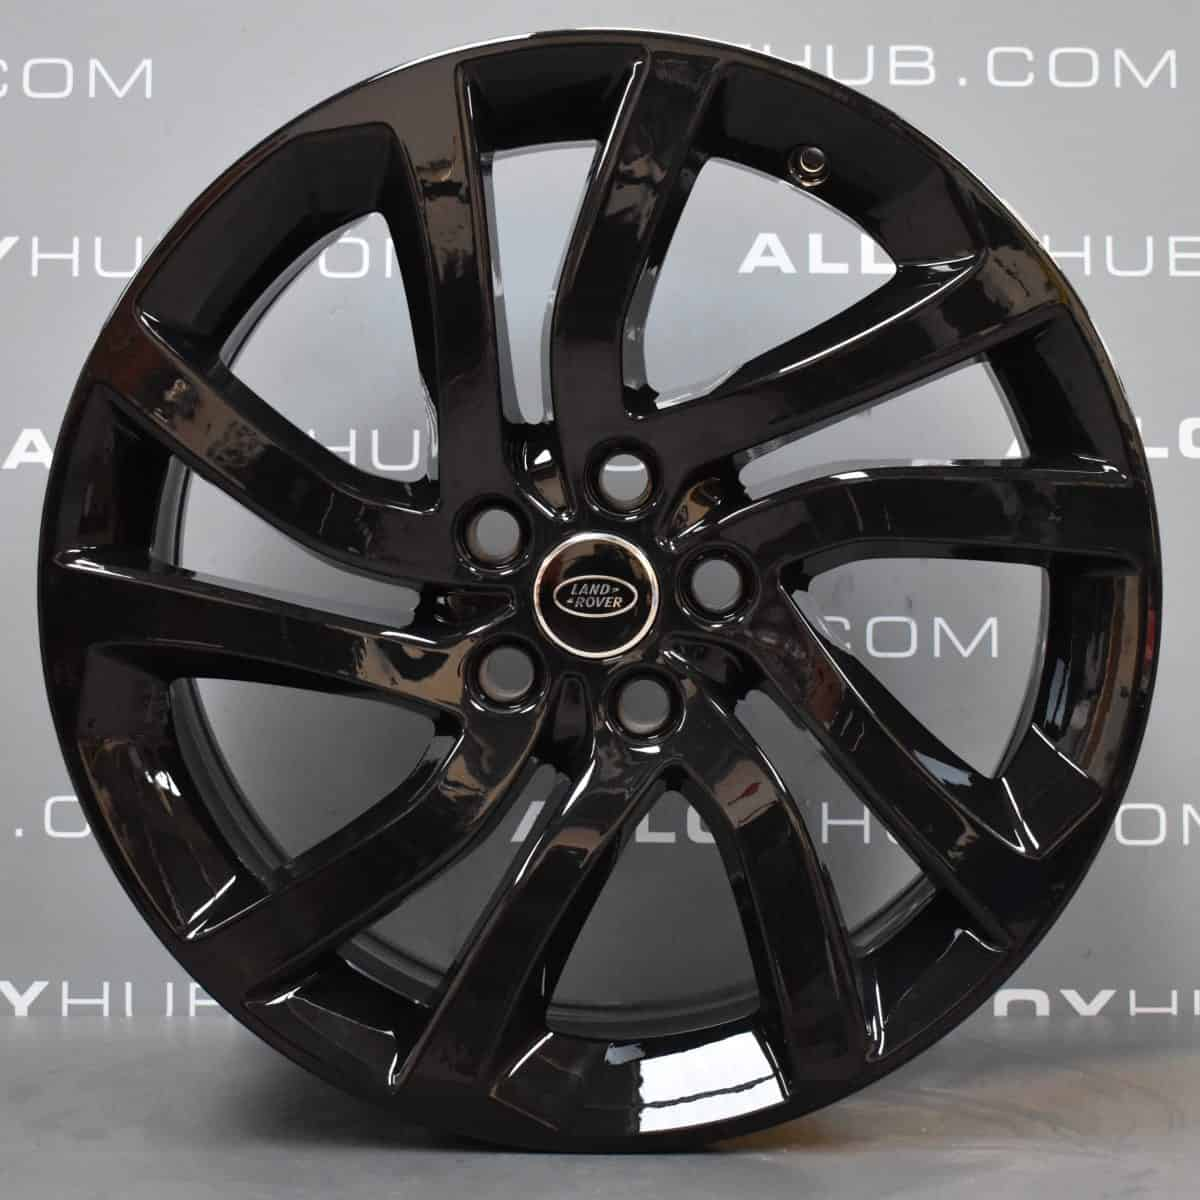 Genuine Land Rover Discovery 5 Style 5011 5 Split-Spoke 20″ inch Alloy Wheels with Gloss Black Finish LR081587